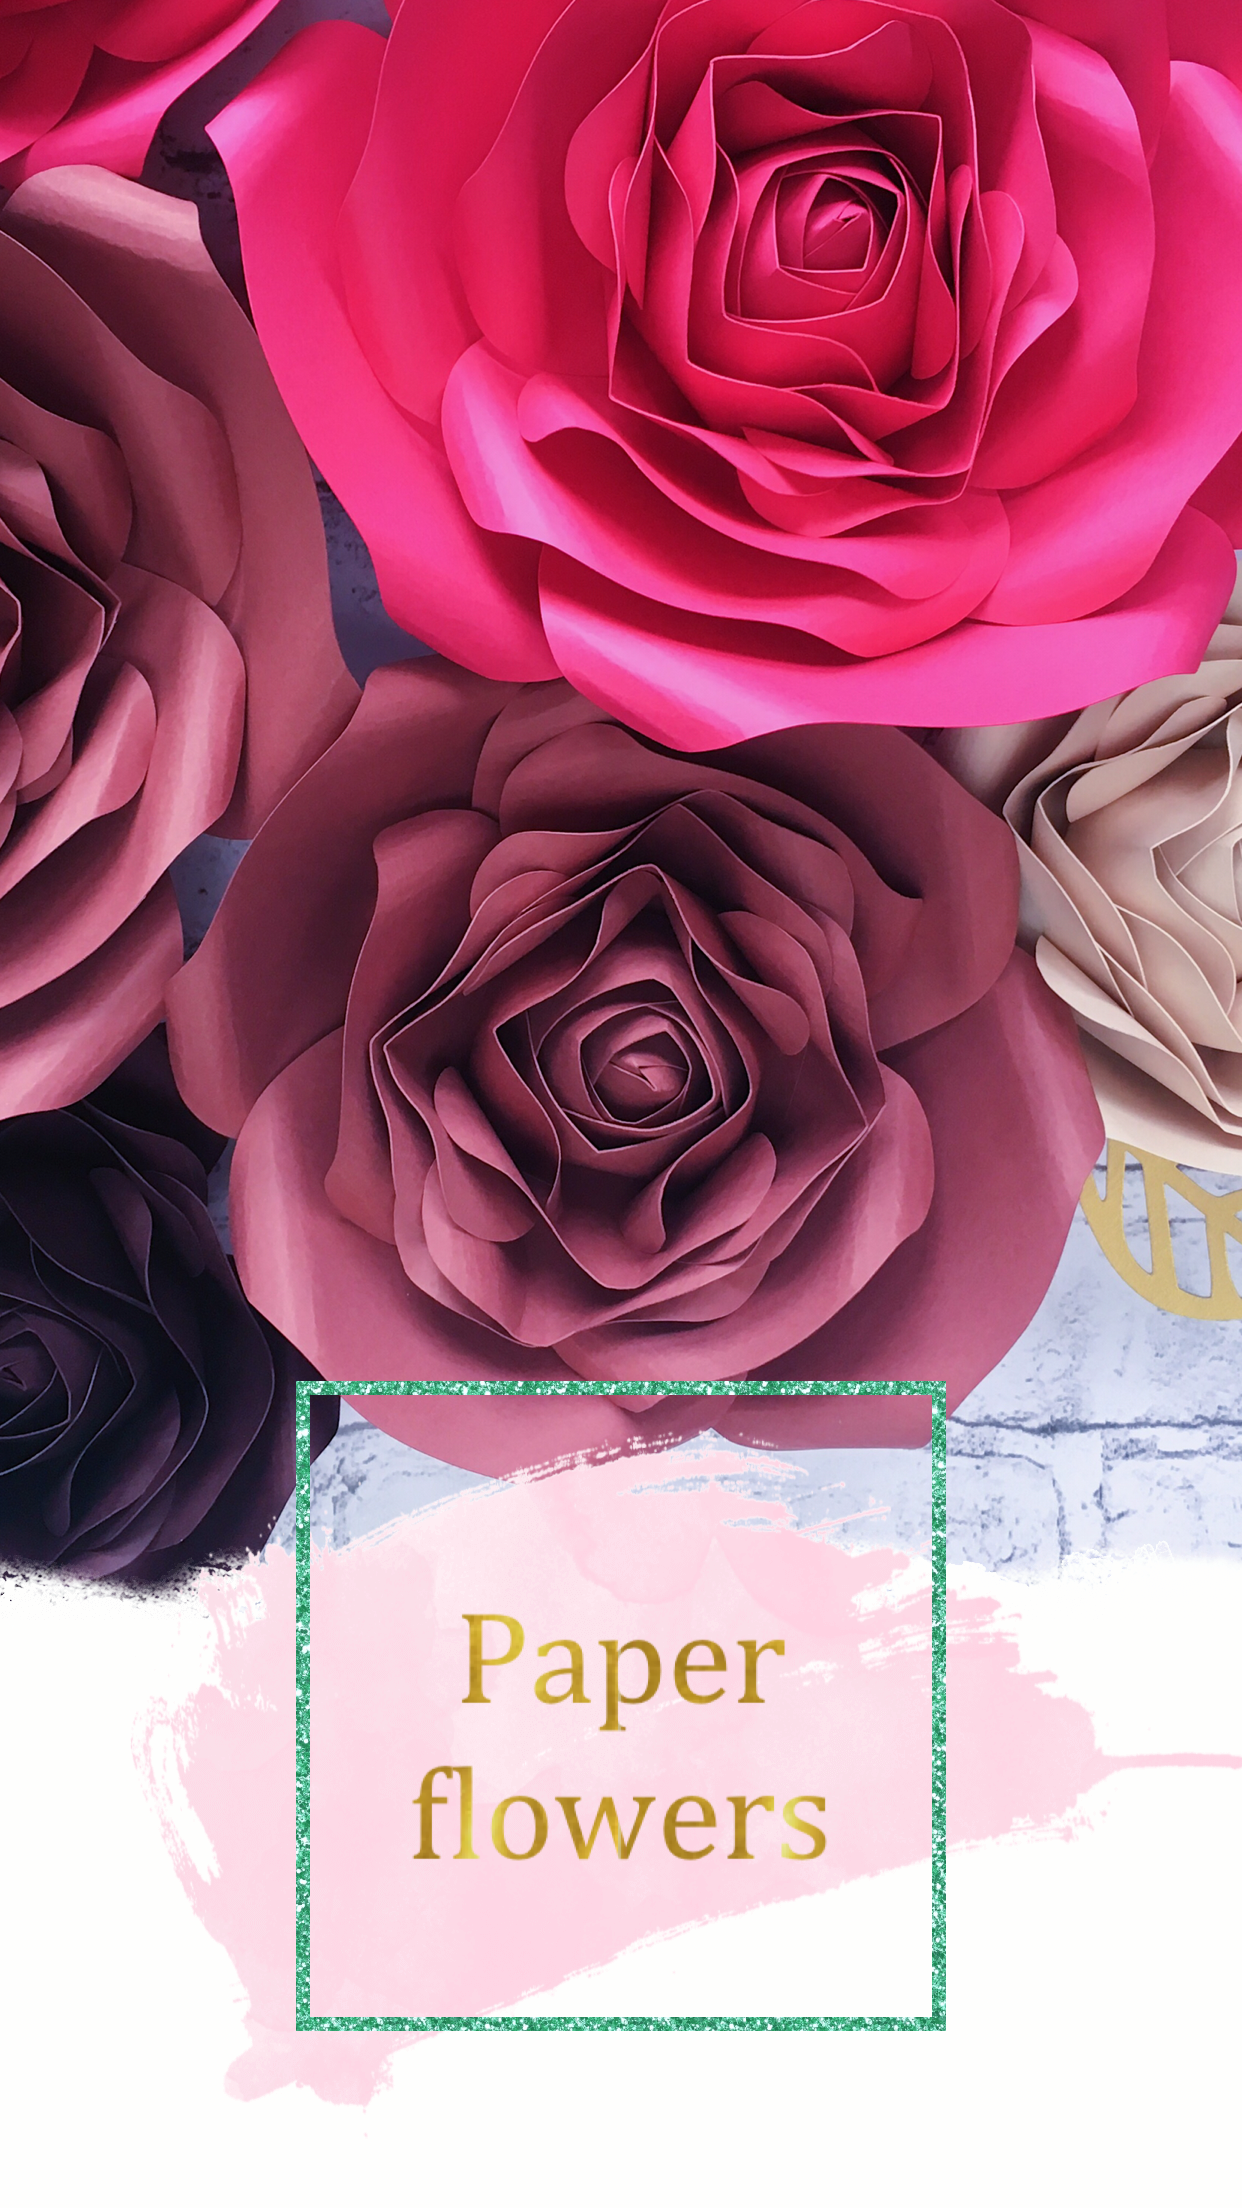 Paper Flowers Wall Decor Fuchsia And Beige Fall Wall Decor